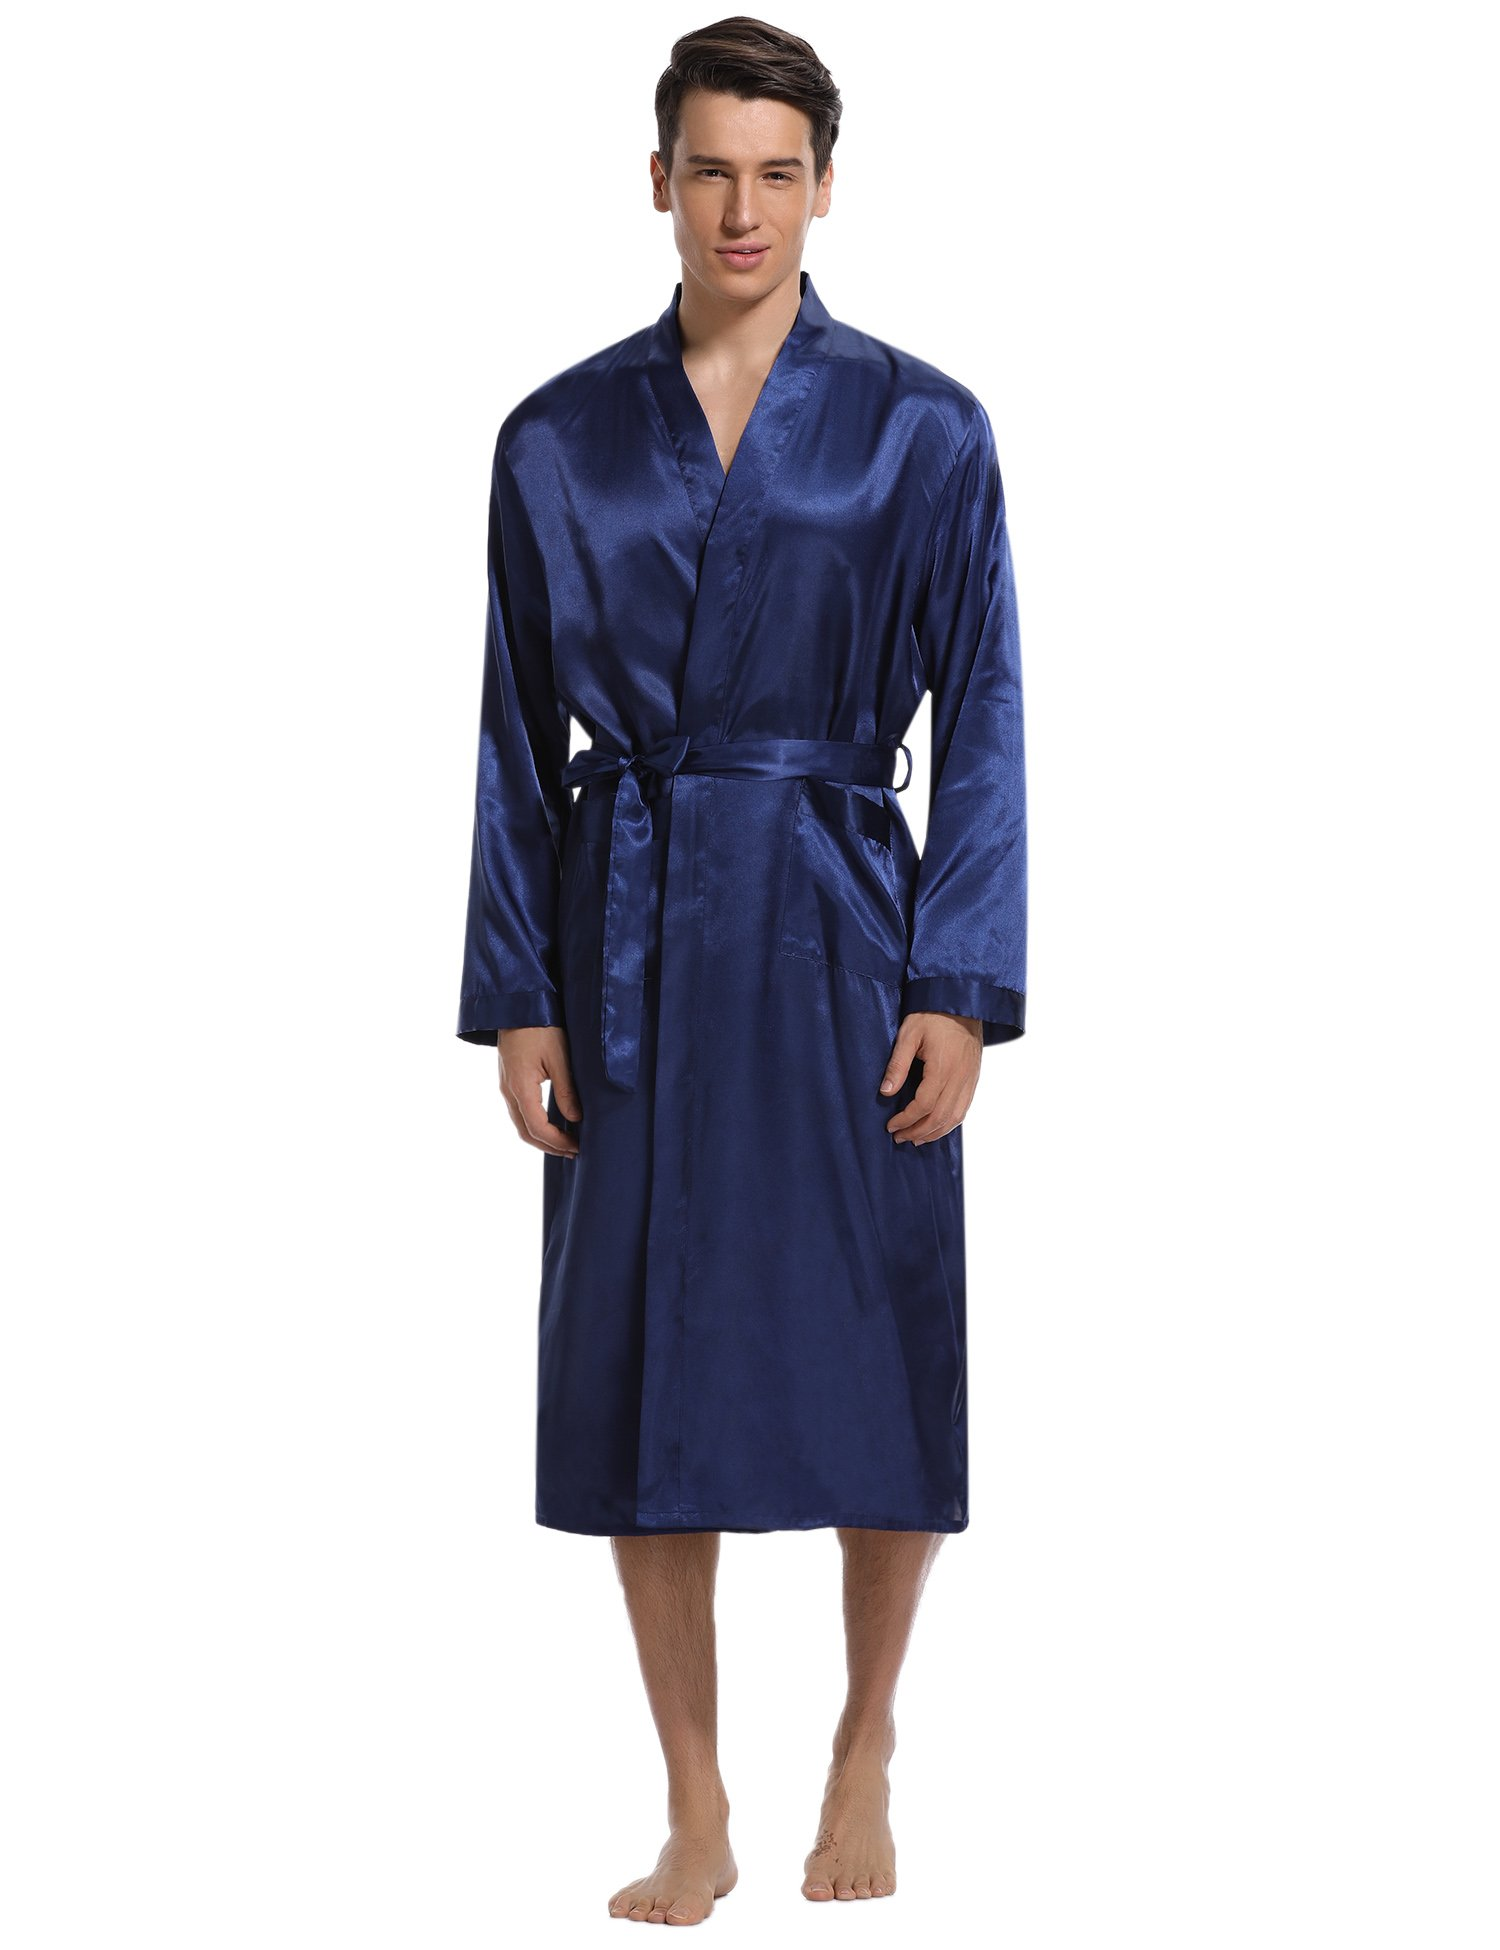 Aibrou Men's Satin Robe Long Bathrobe Lightweight Sleepwear,X-Large,Blue